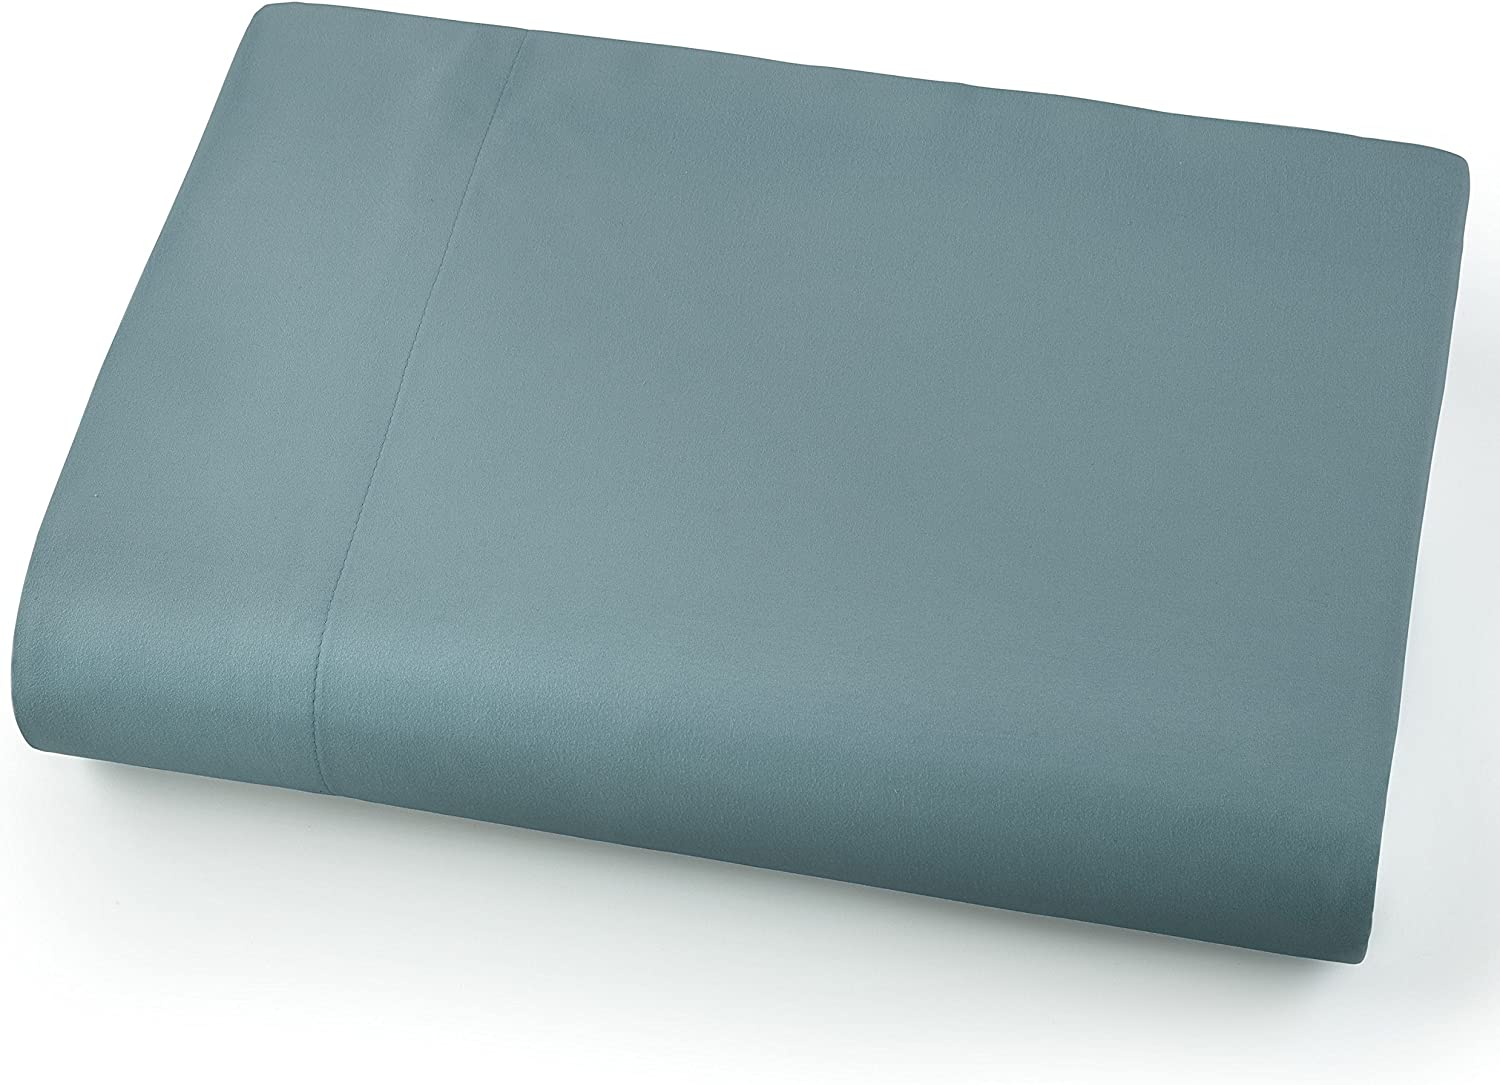 Southshore Fine Linens - Oversized Flat Sheets Extra Large - 132 Inches x 110 Inches (Steel Blue (Teal))